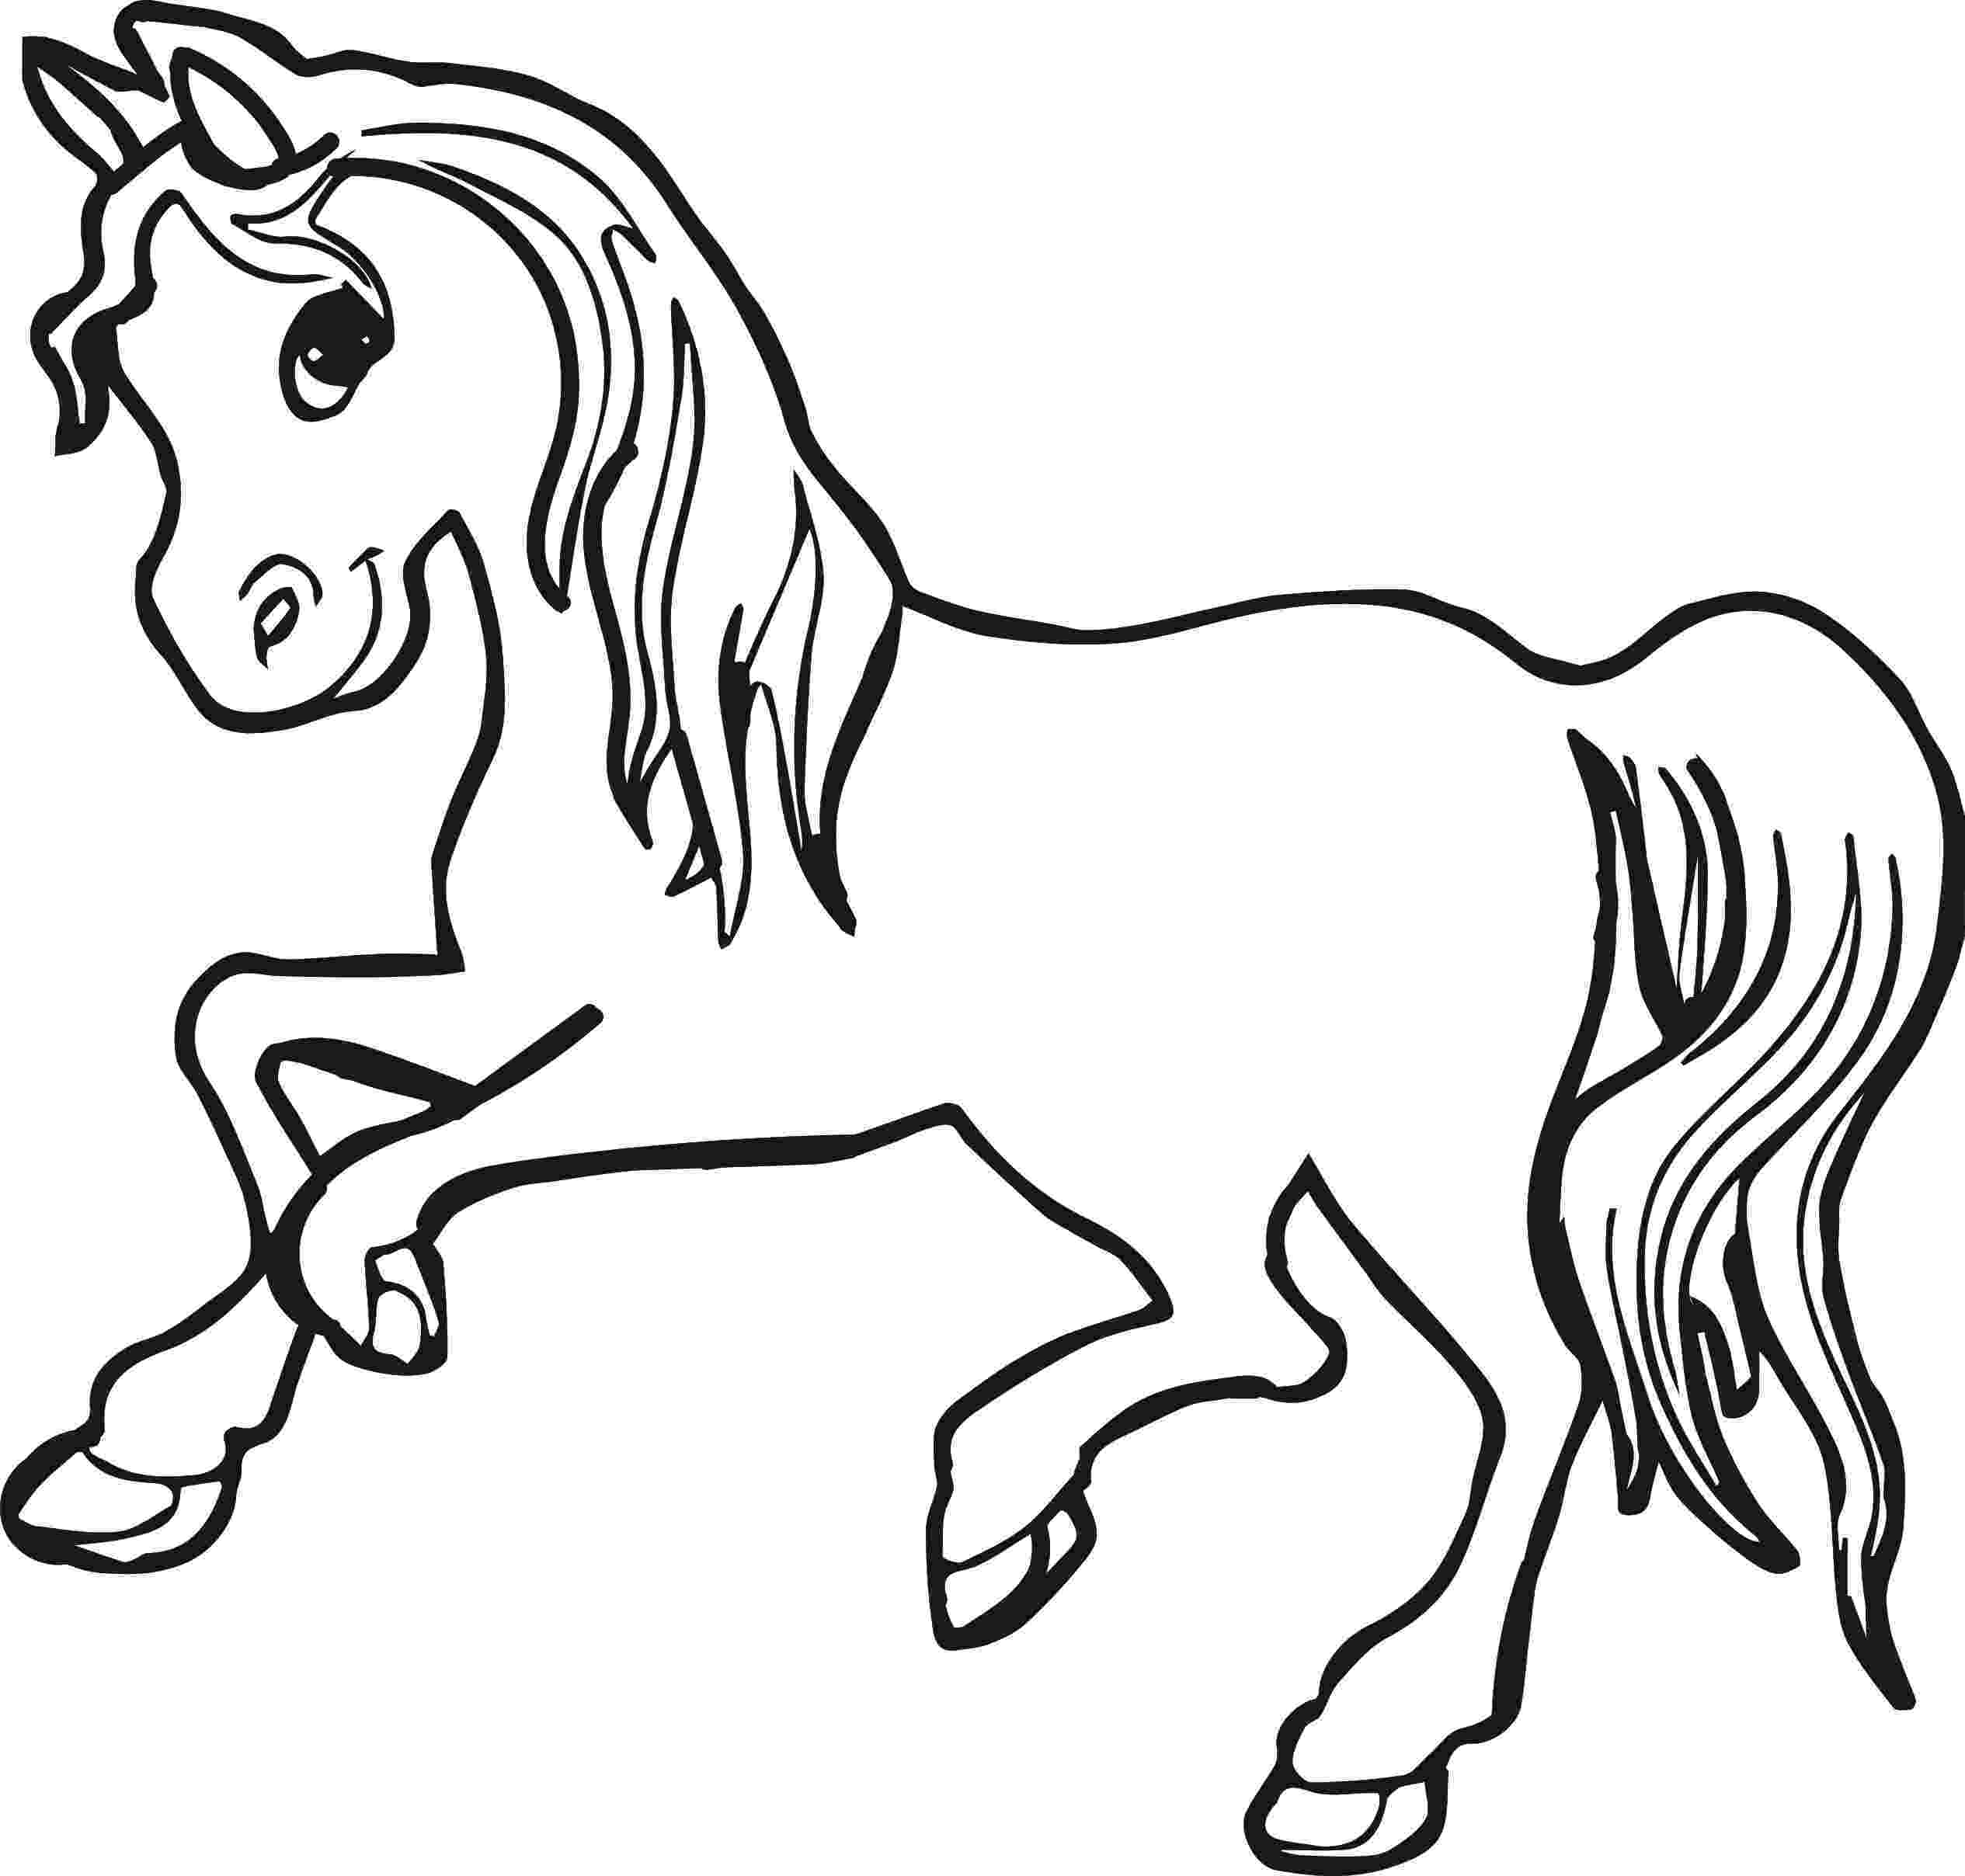 coloring page horse horse coloring pages to download and print for free coloring horse page